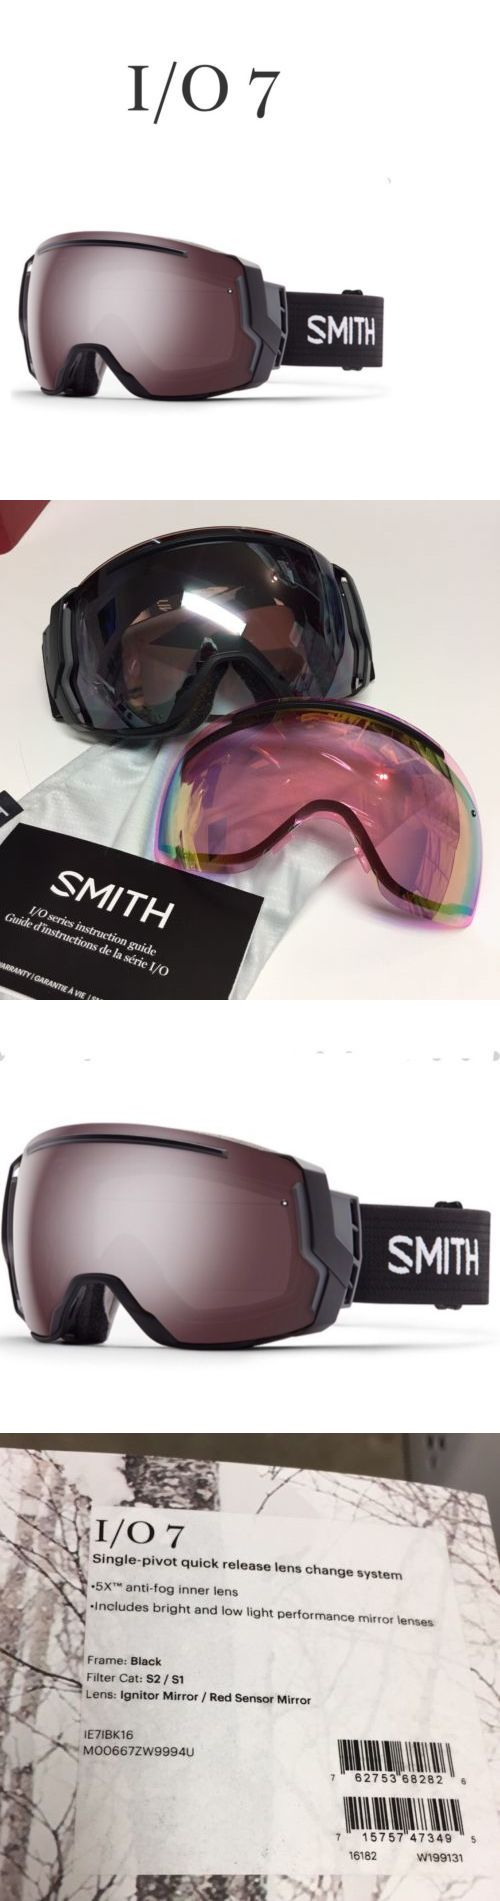 Goggles and Sunglasses 21230: Smith I O 7 Ignitor Mirror Red Sensor Mirror Snowboarding Goggles Brand New -> BUY IT NOW ONLY: $139.95 on eBay!